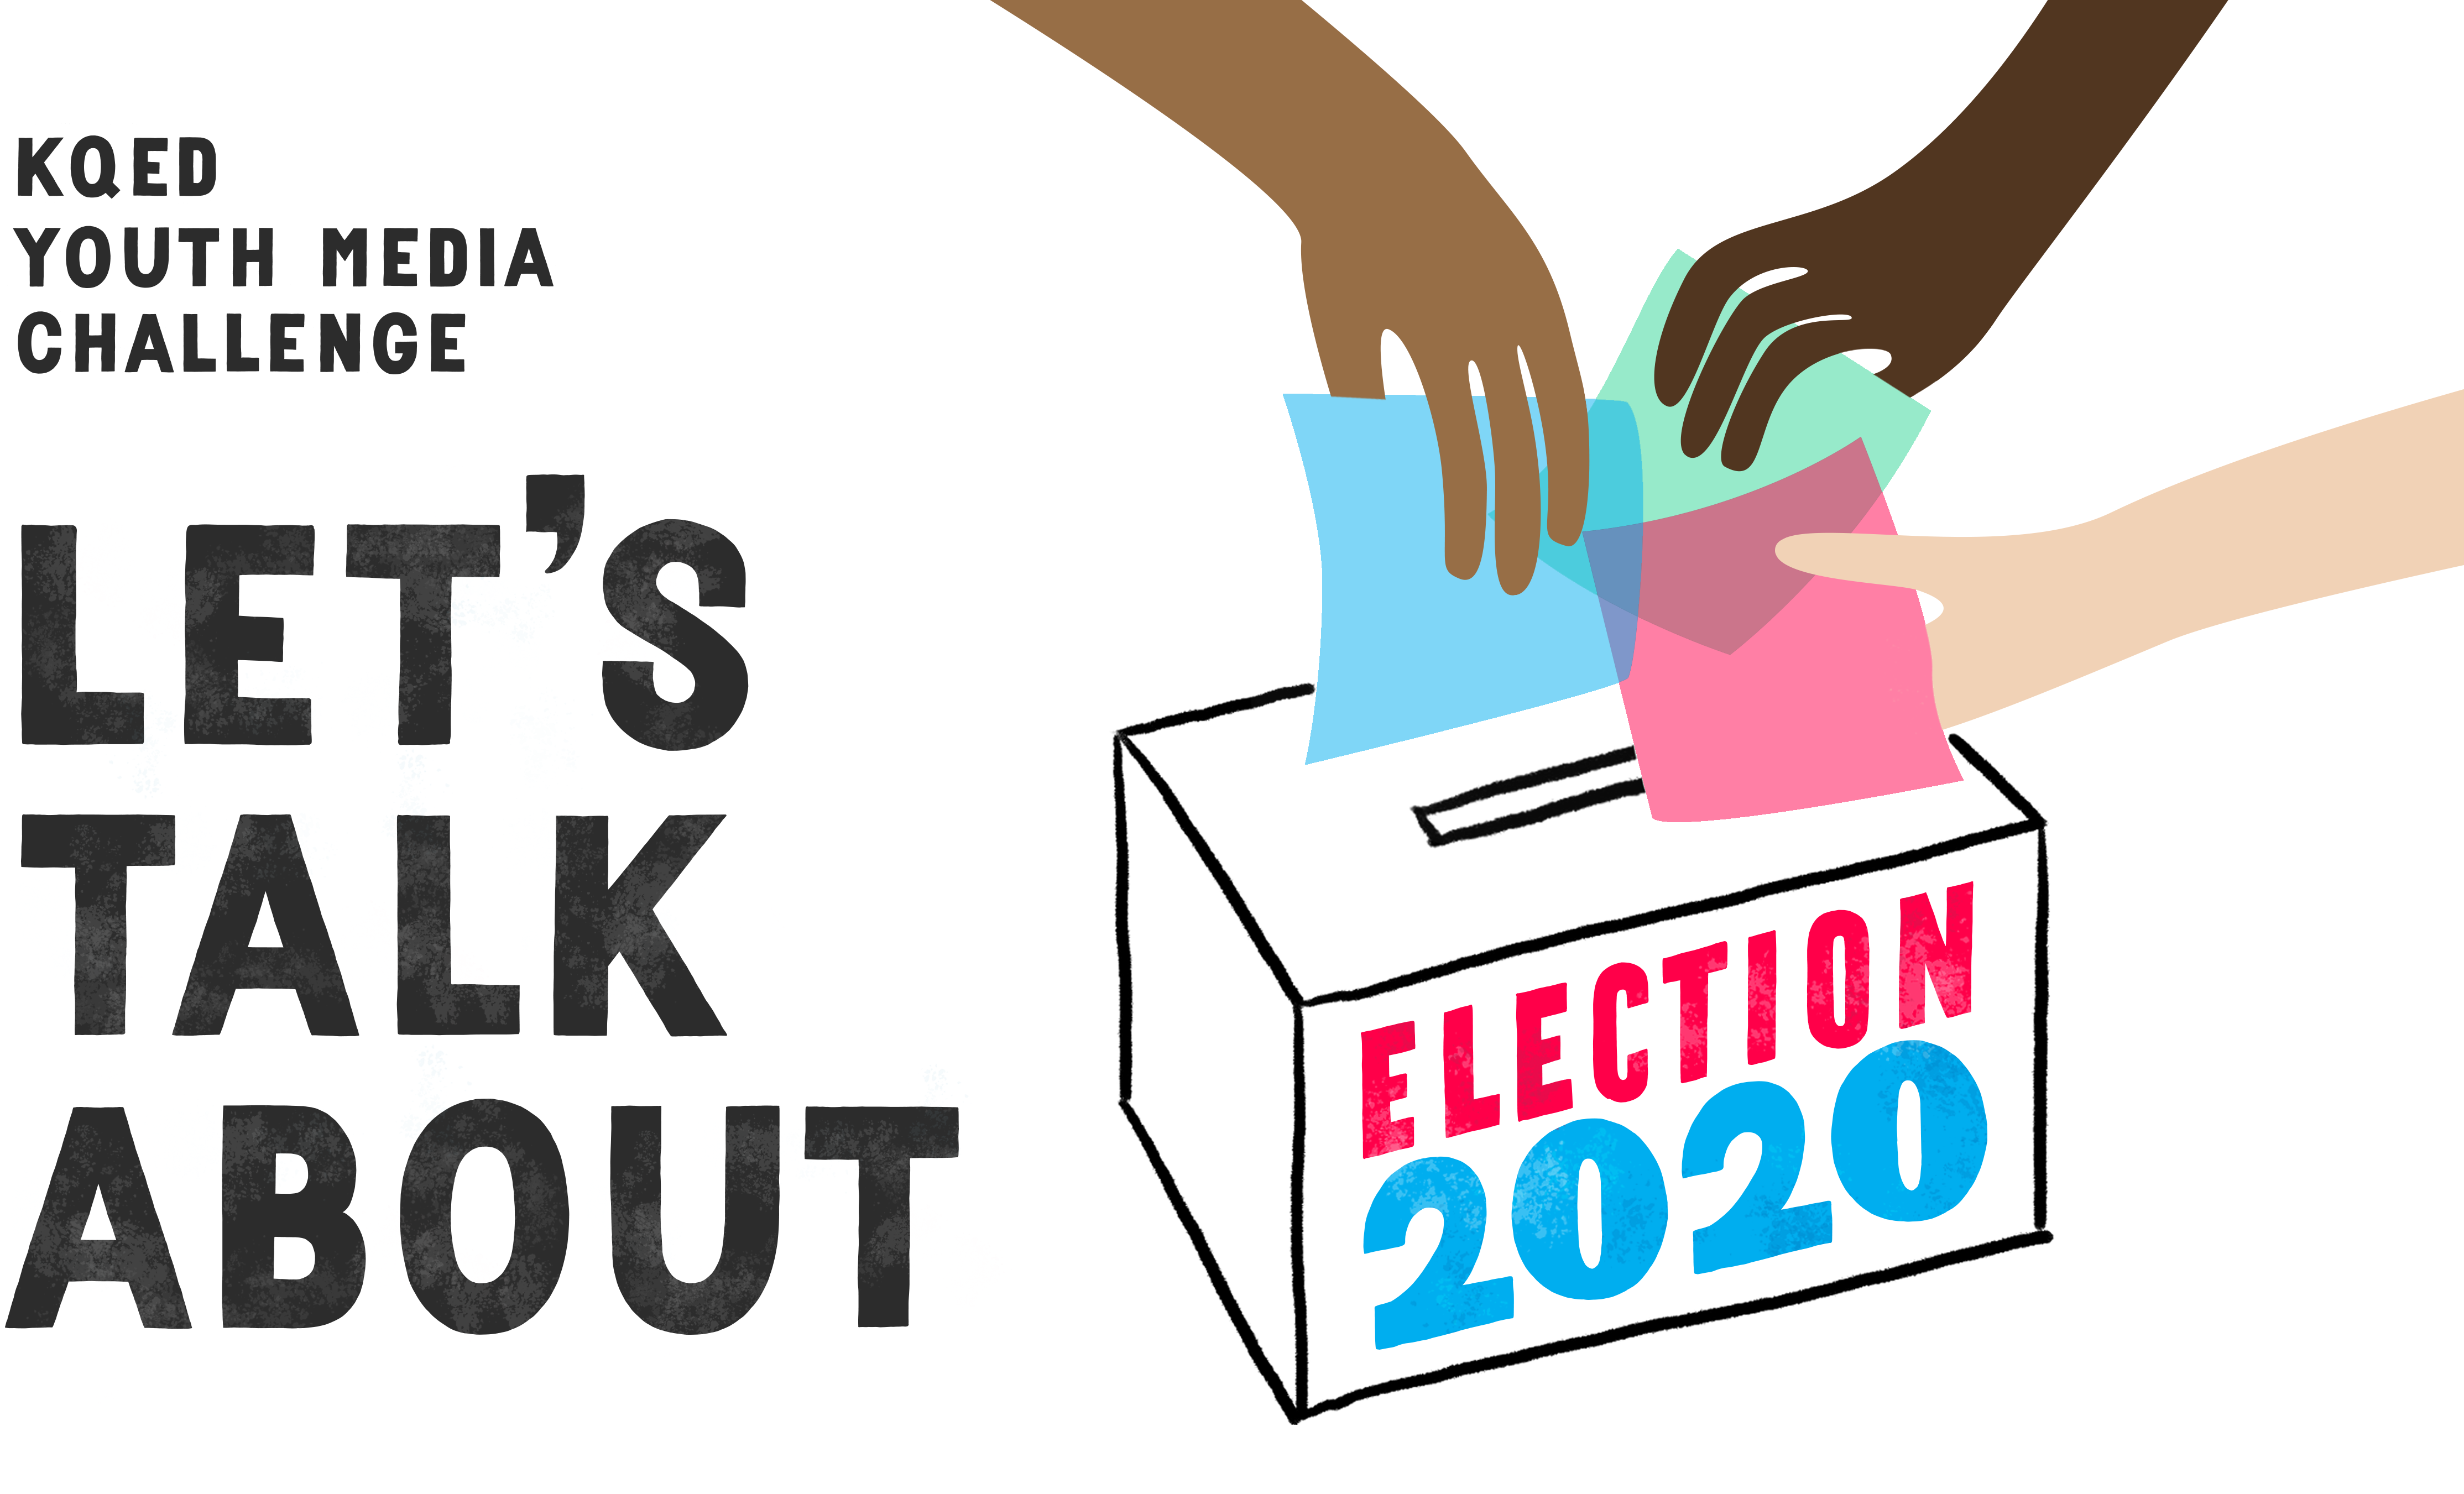 Let's Talk About Election 2020 - Vote Box